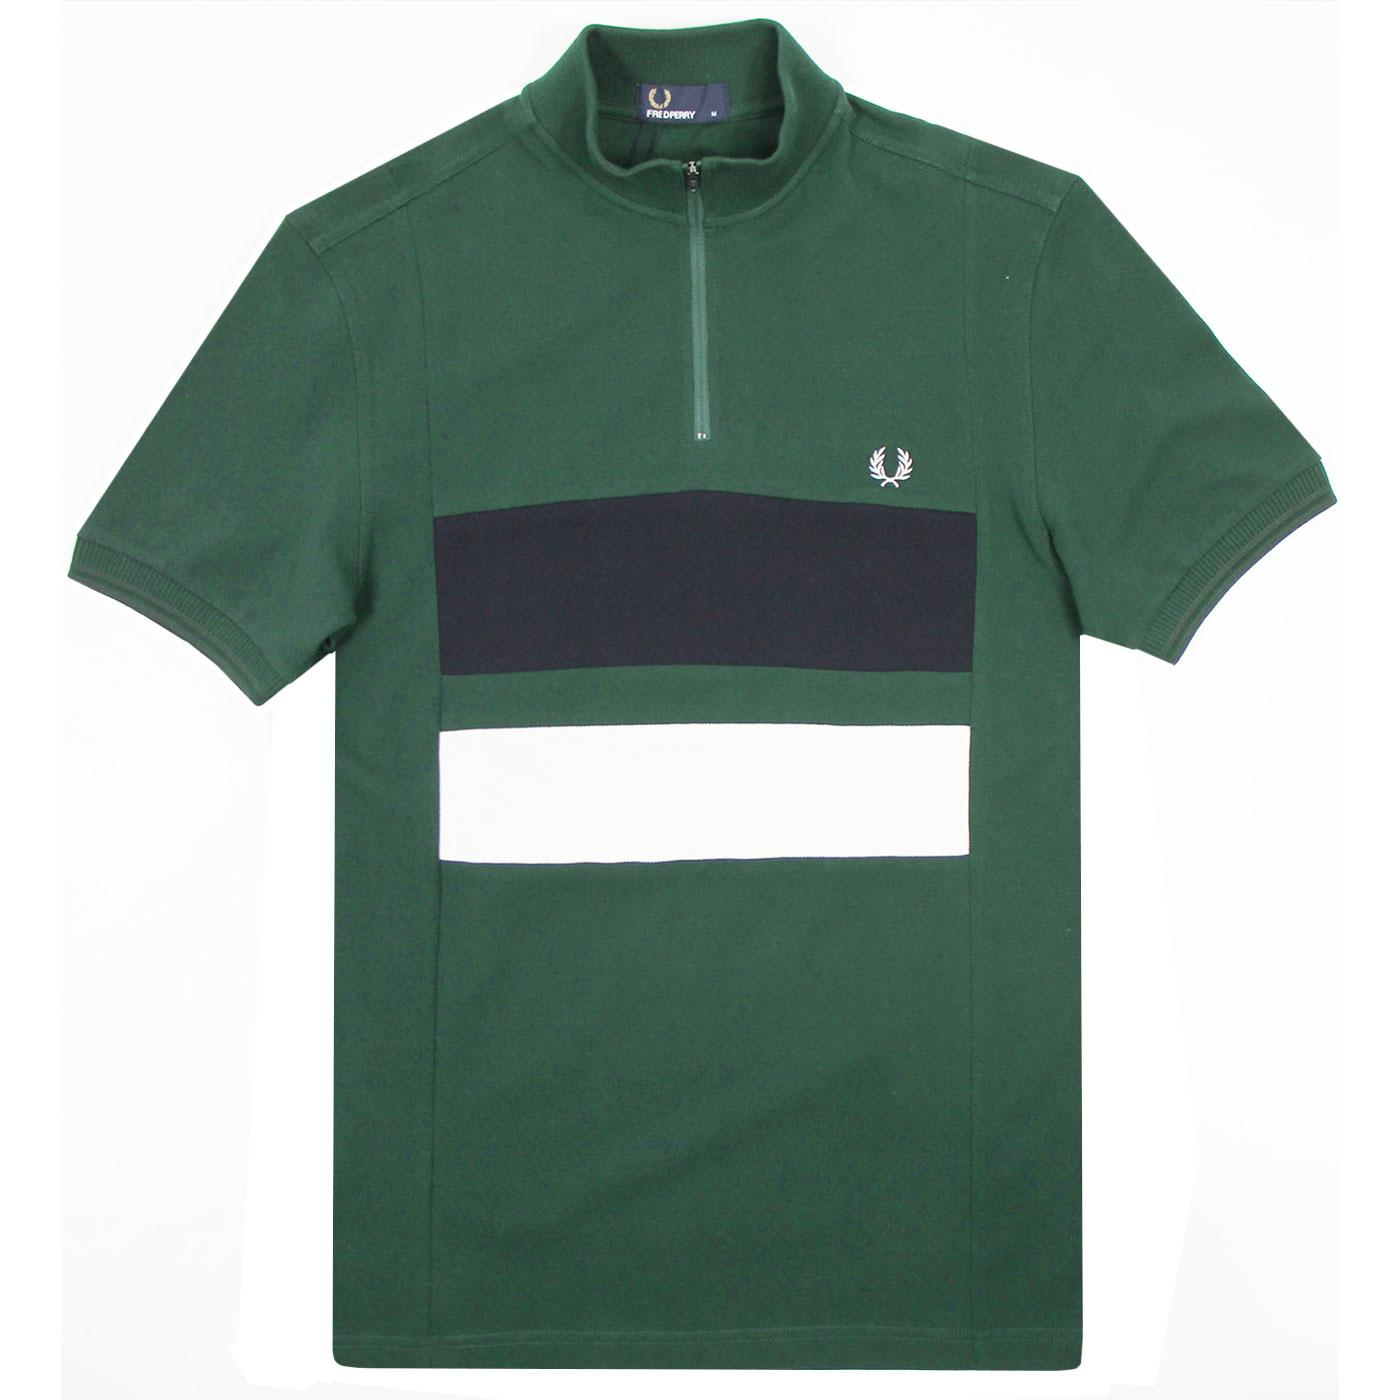 FRED PERRY Colour Block Mod Pique Cycling Top